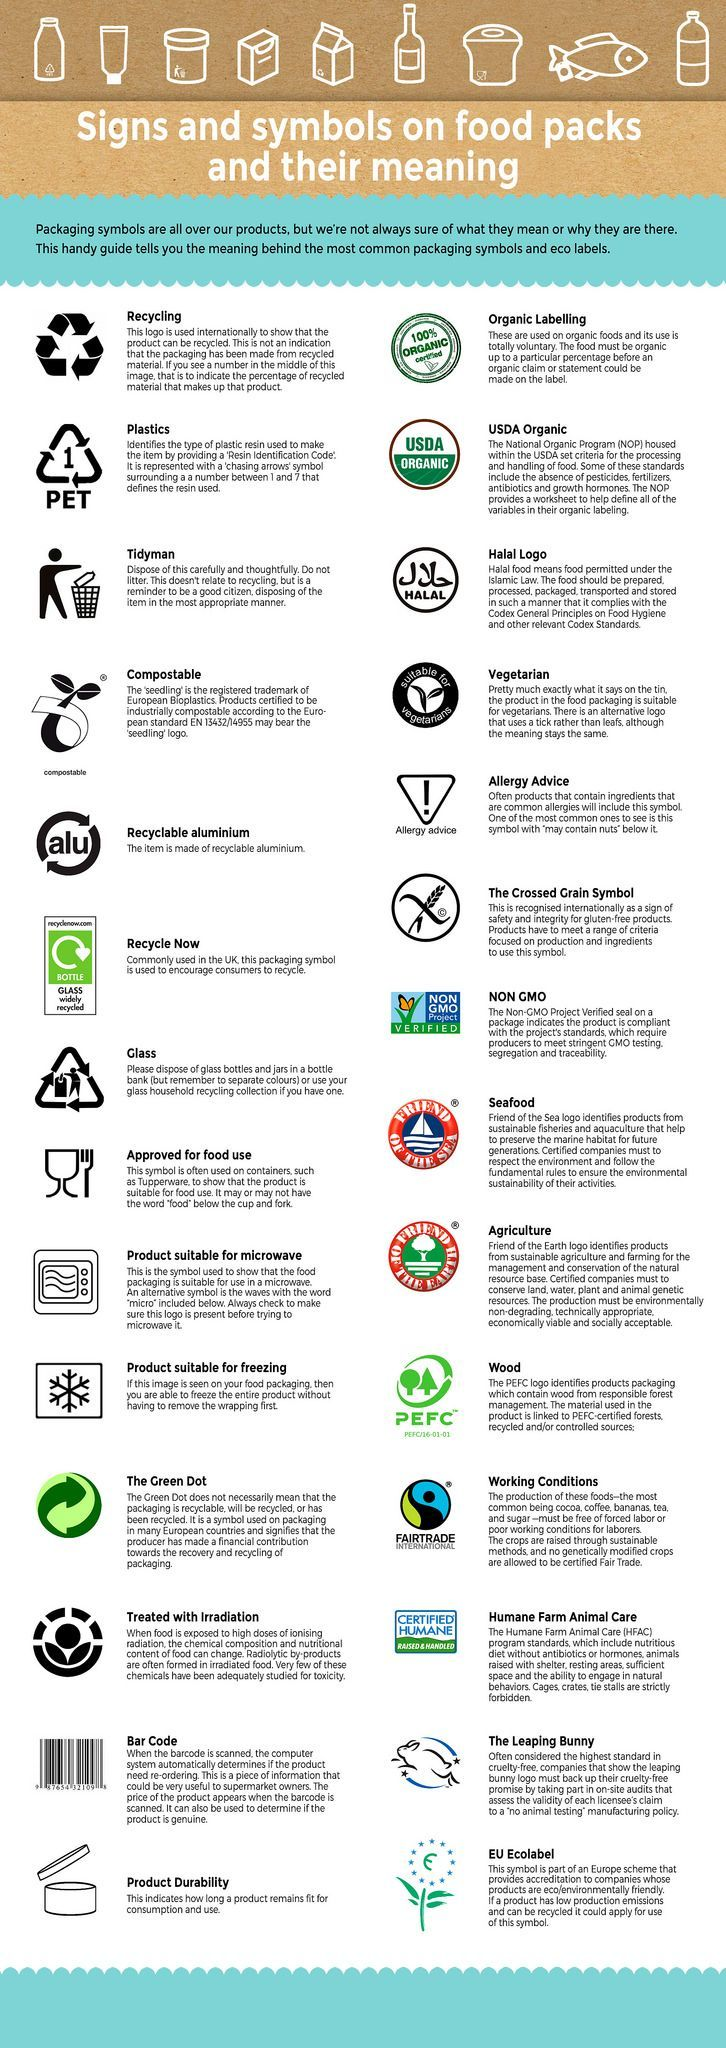 1d3c236823c5 Most popular signs, symbols and ecolabels on food packaging and their  meaning. #infographic #environment #symbols #packaging #naturalhealth  #ecofriendly ...